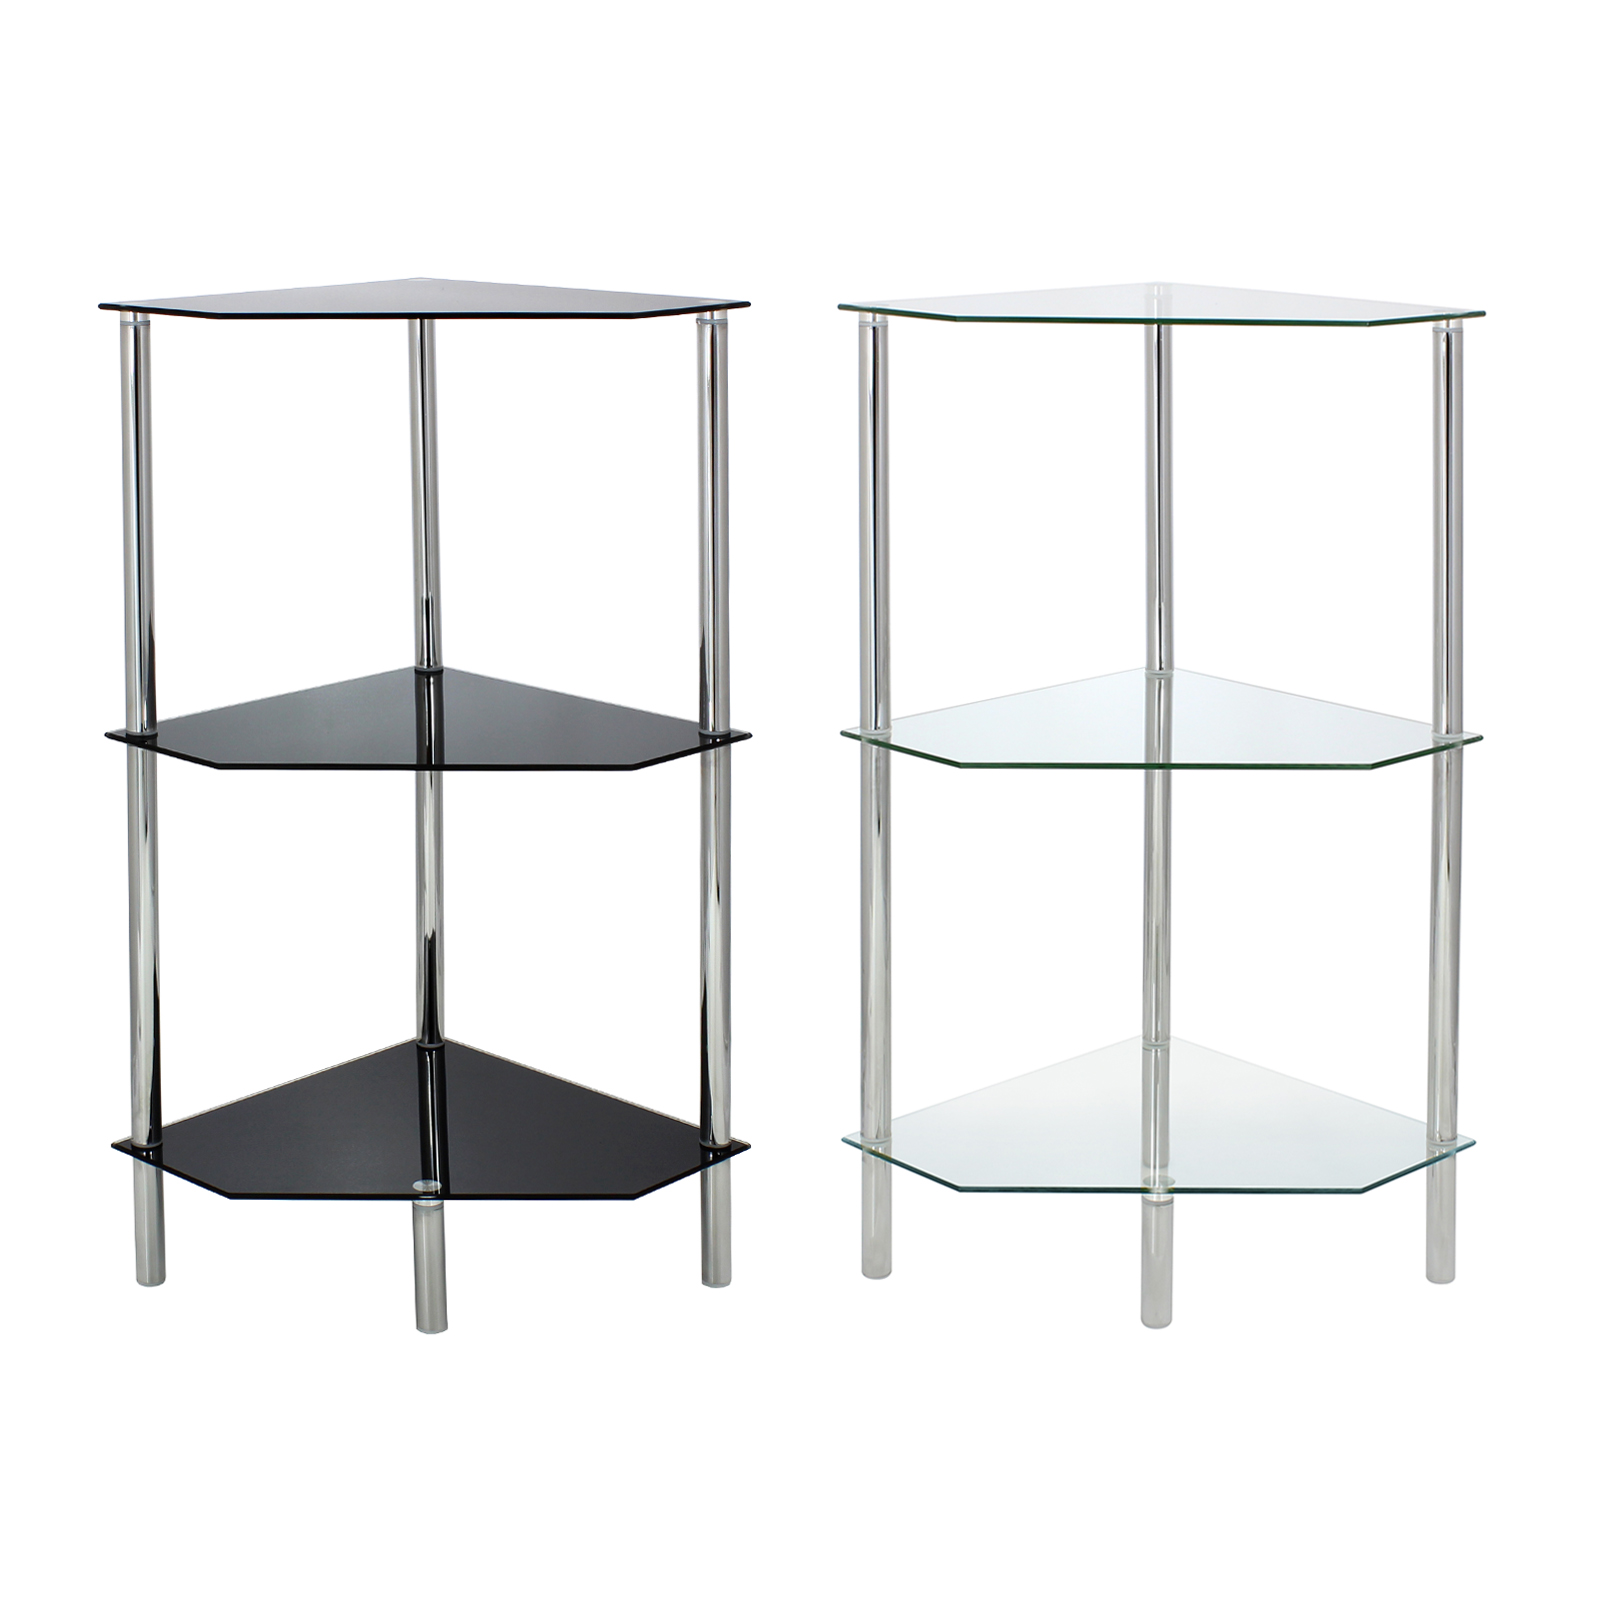 Glass corner shelf shelving unit display bathroom hall end - Bathroom glass corner shelves shower ...